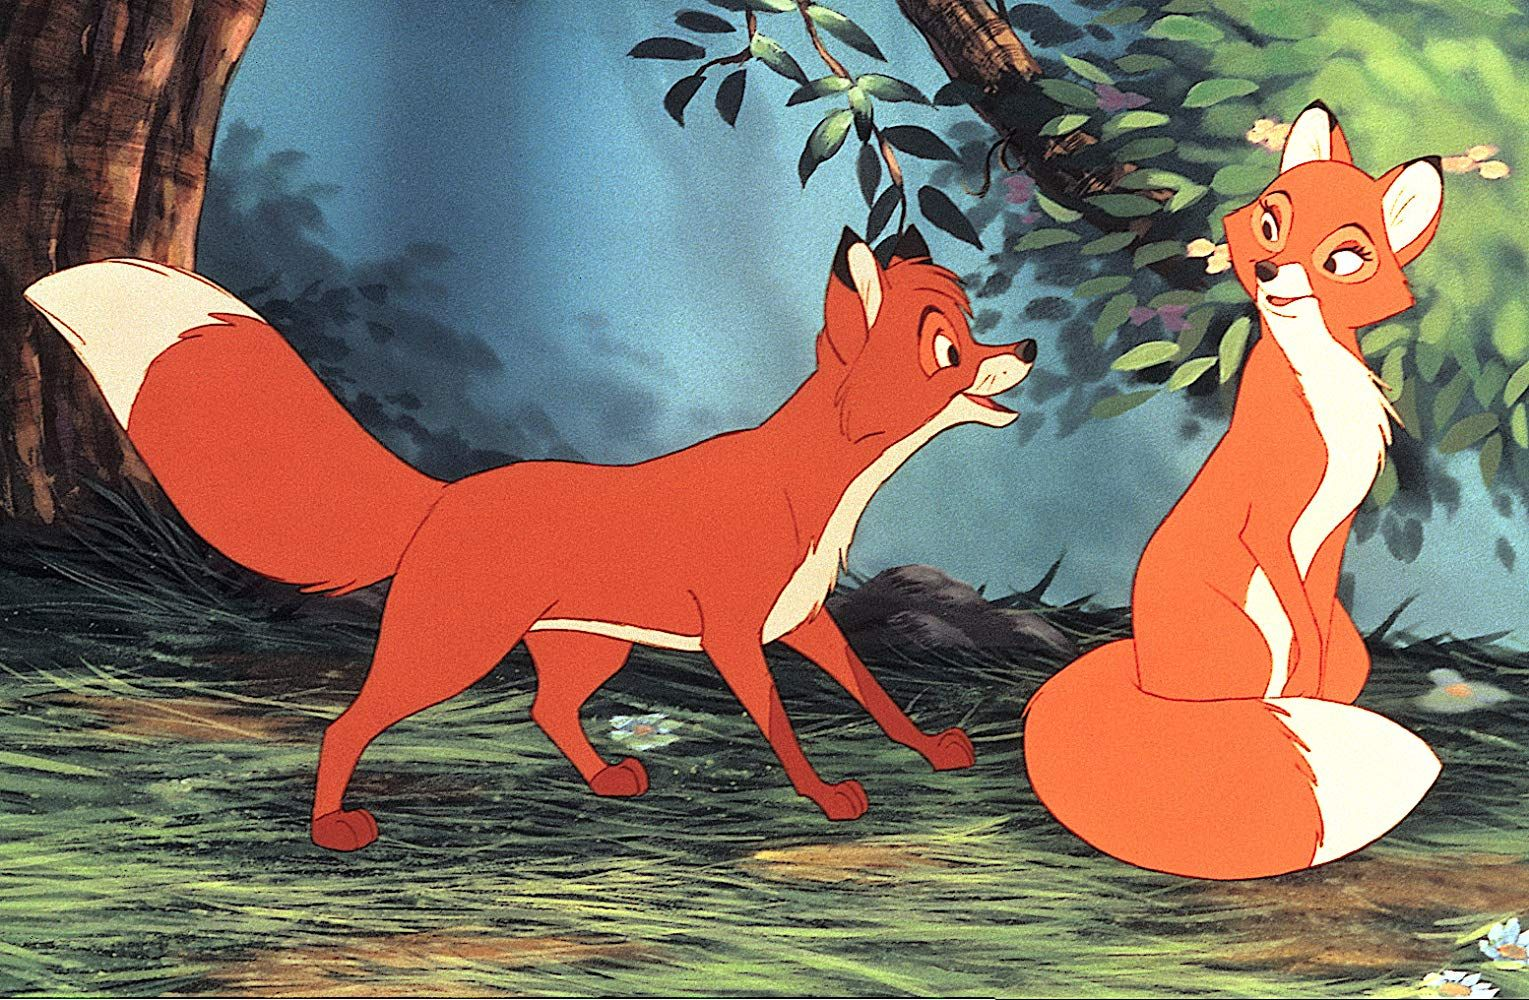 Mickey Rooney And Sandy Duncan In The Fox And The Hound 1981 The Fox And The Hound Disney Collage Fox Illustration